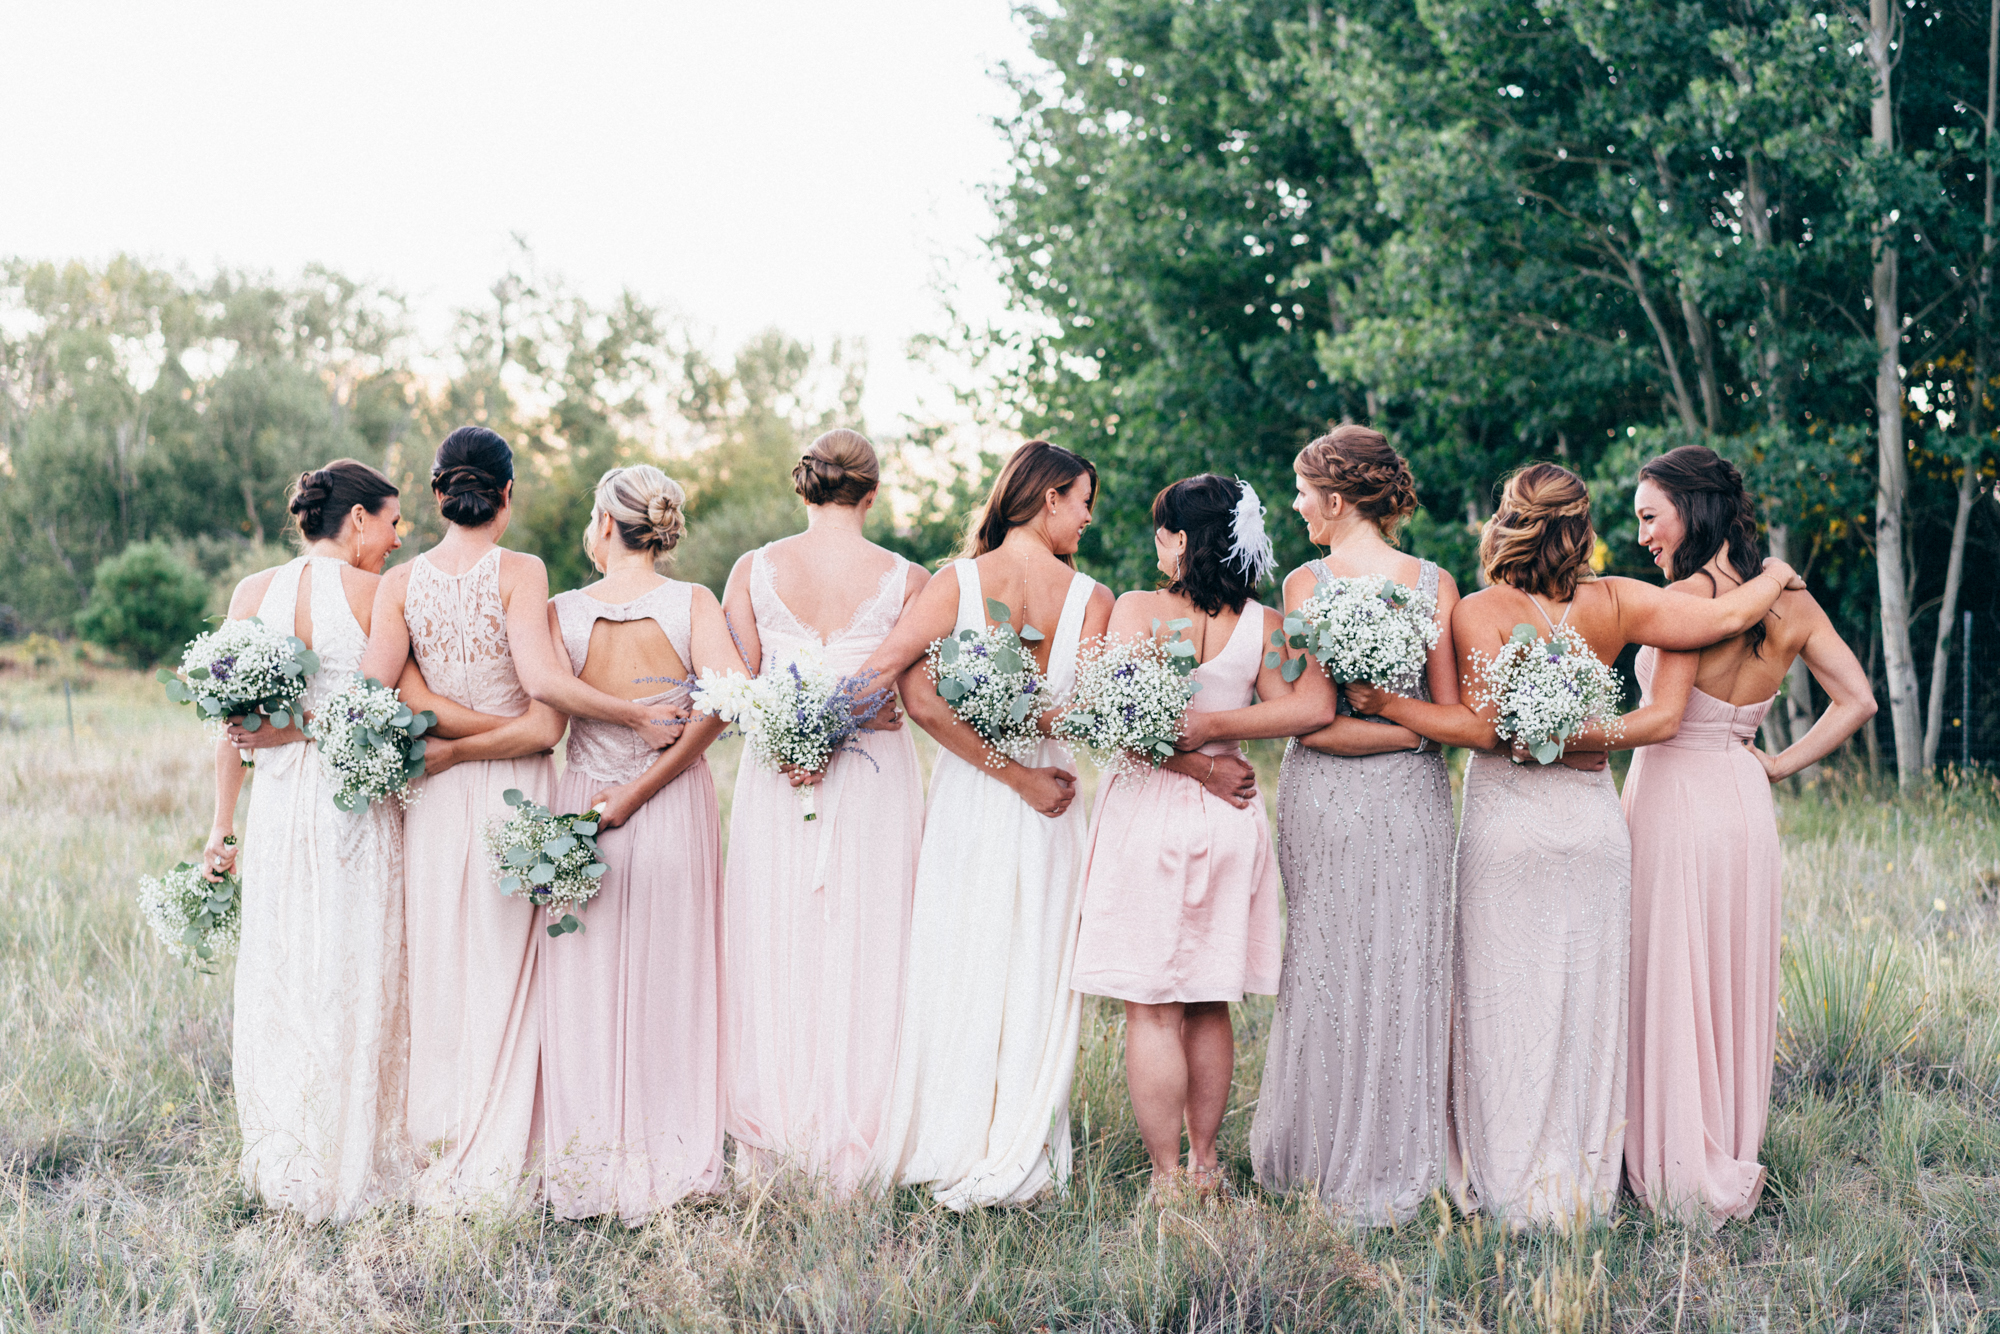 S+A_BridalParty (26 of 75).jpg